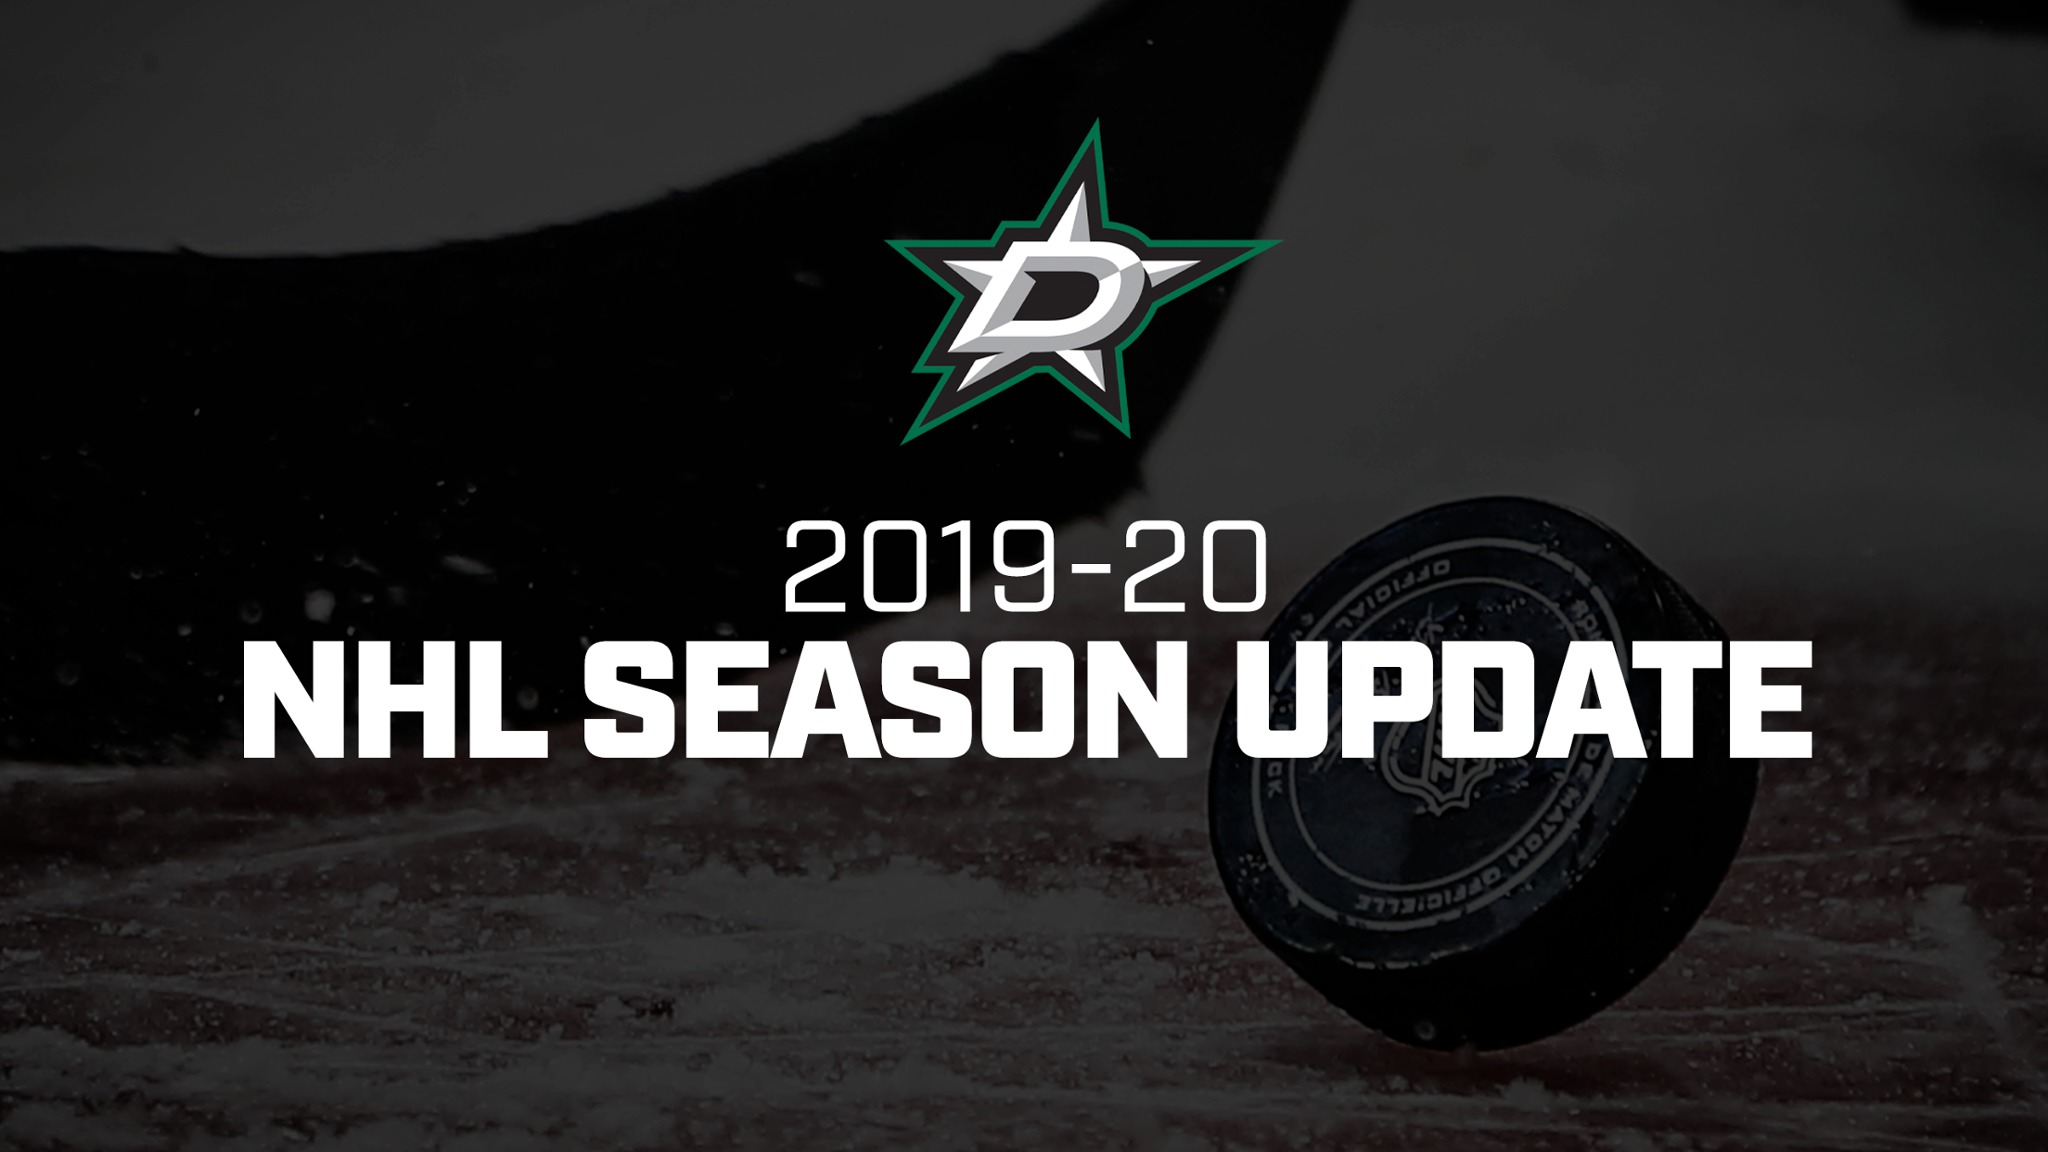 NHL 2019-20 Season Suspended